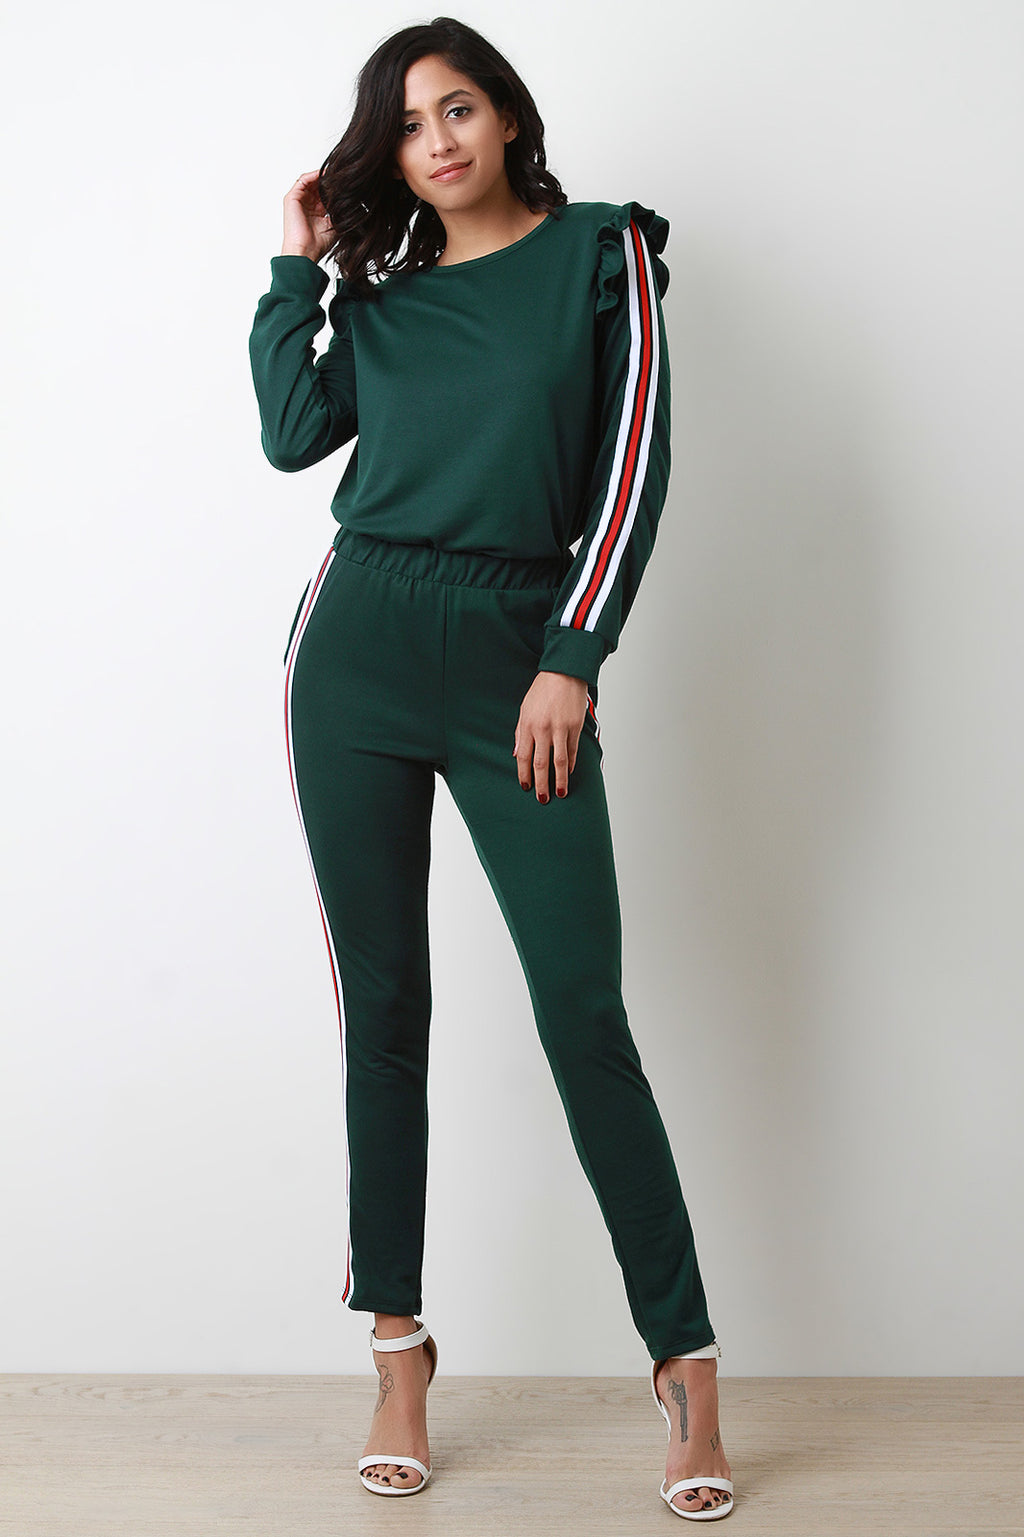 Ruffle Shoulder Sporty Striped Jogger Suit